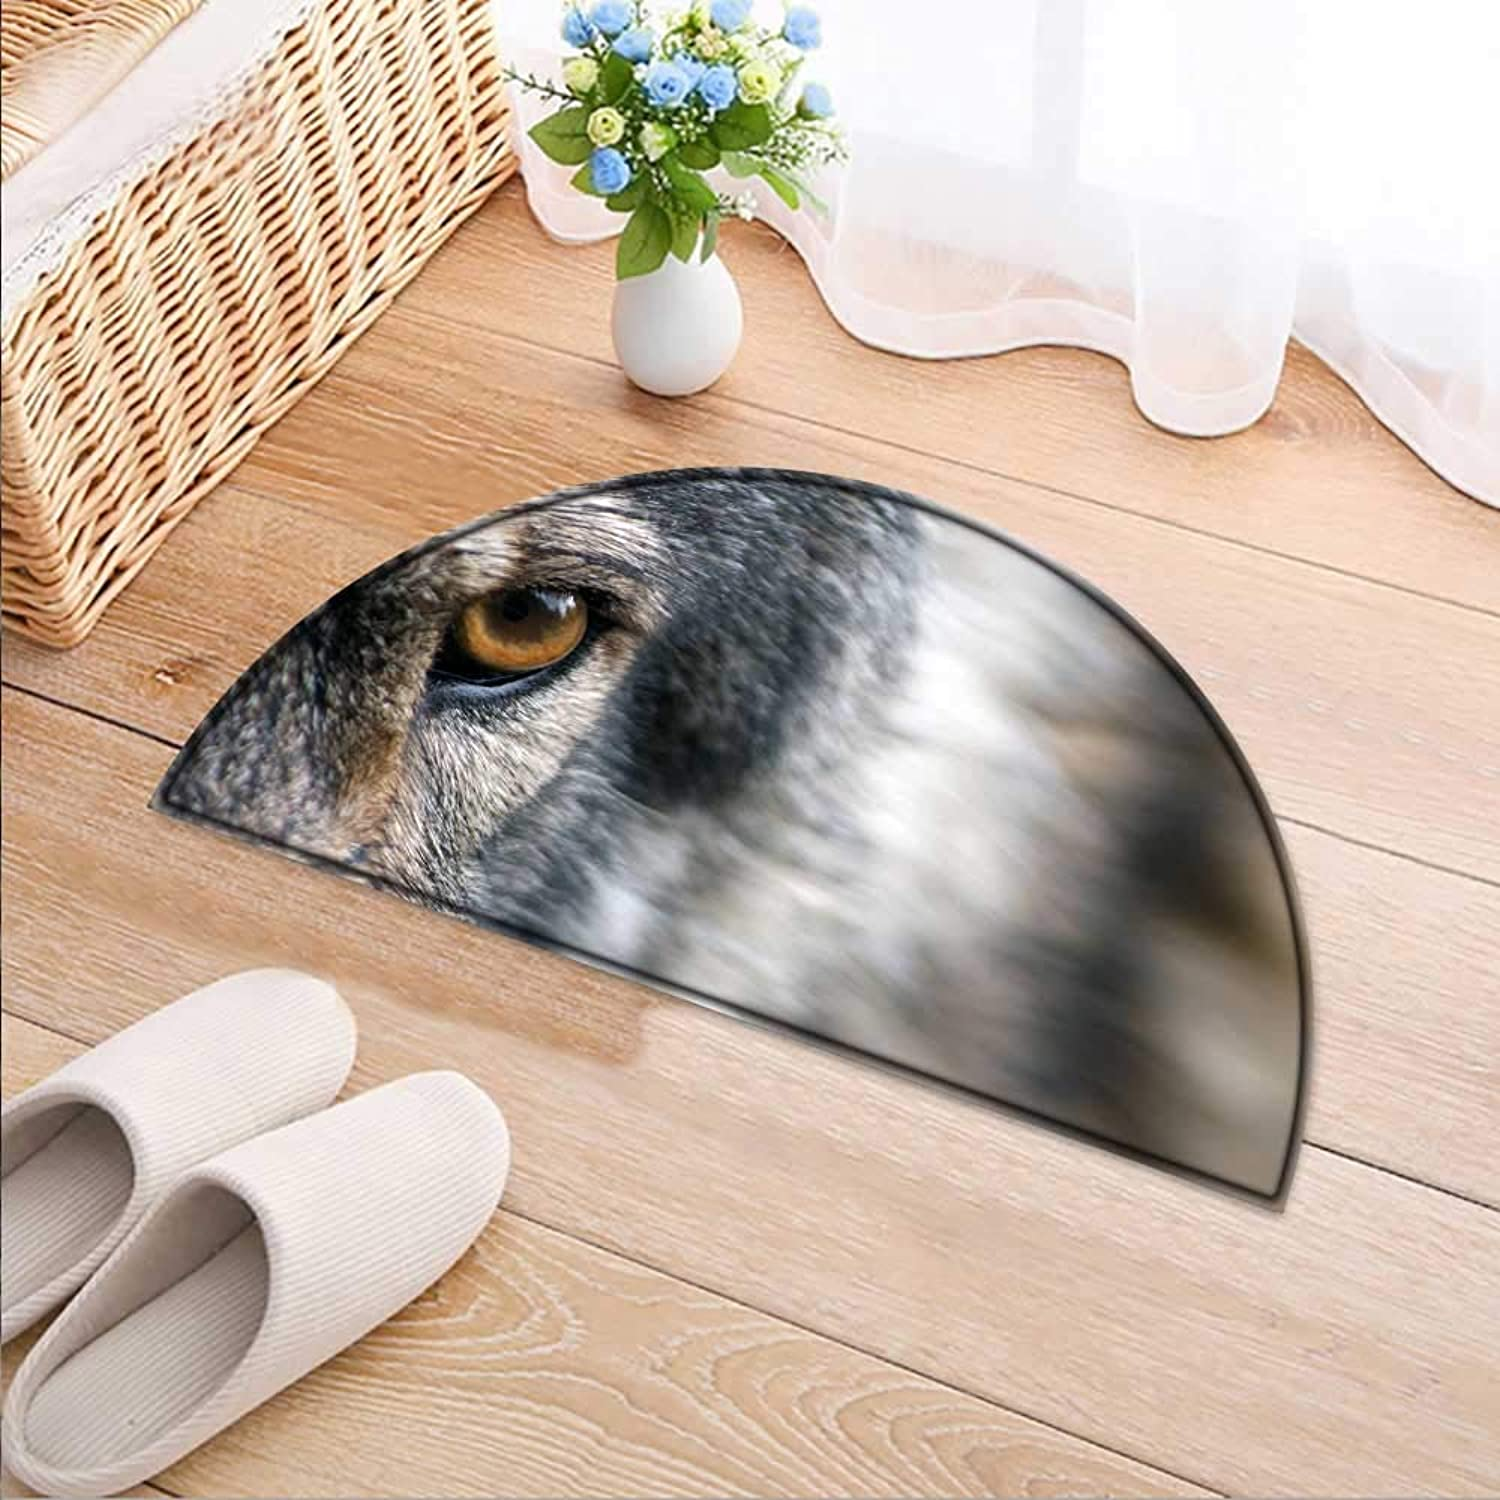 Entrance Hall Carpet The Shiny Wolf's Glasses Non Slip Rug W47 x H32 INCH